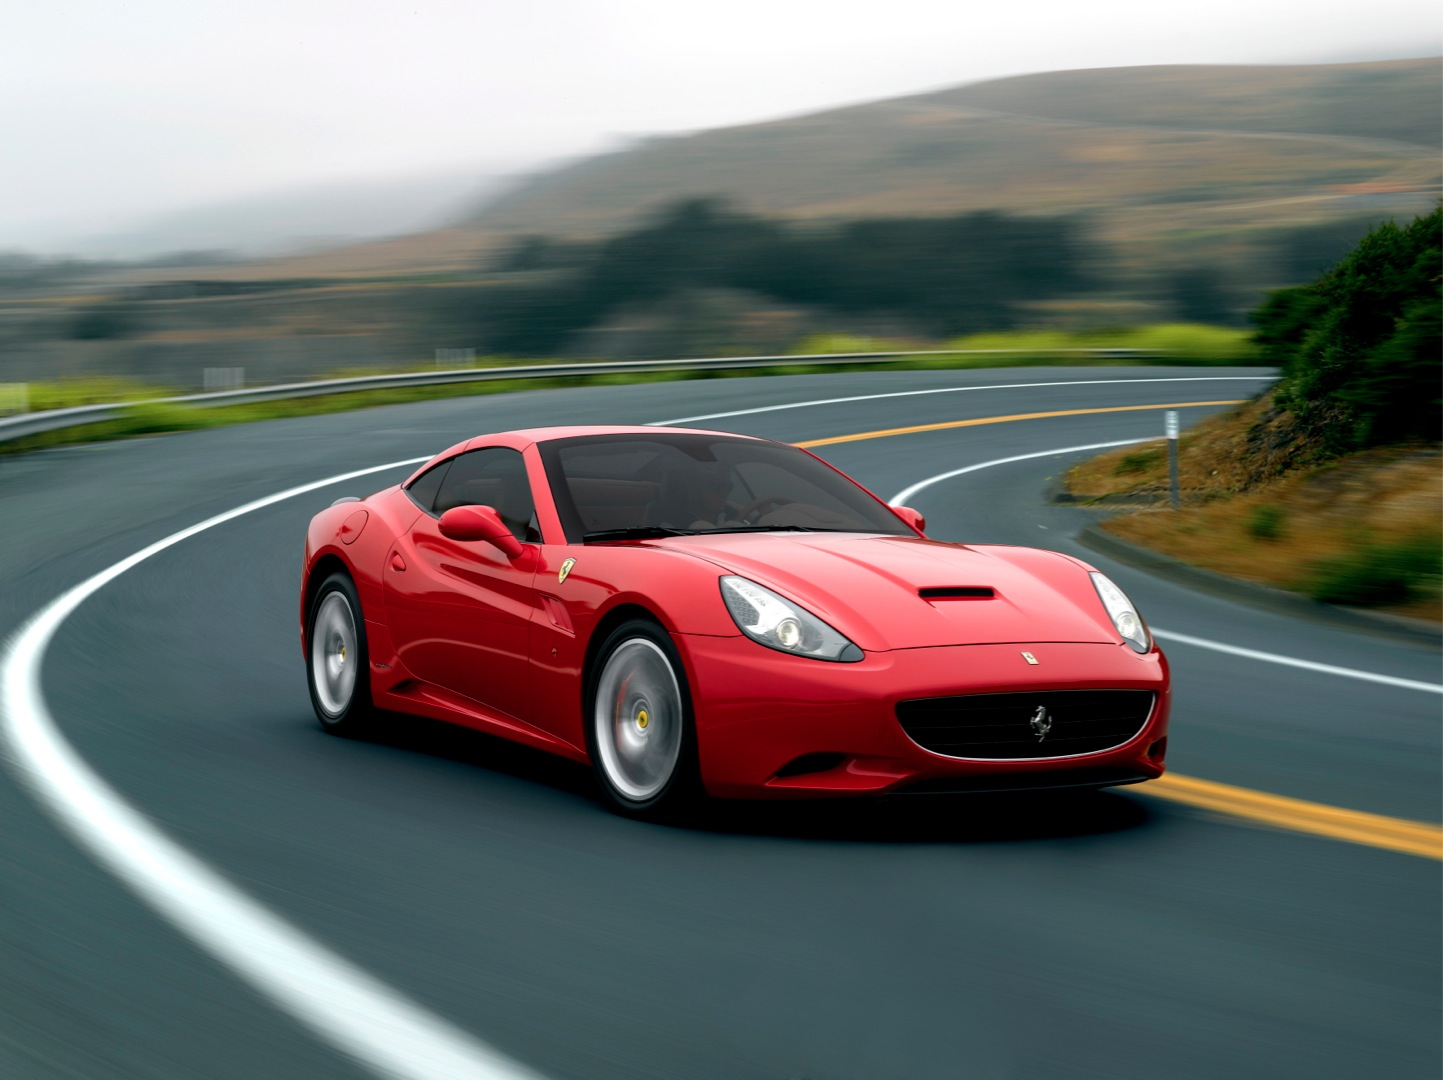 Cool Sports Cars Ferrari: FERRARI F149 California Specs & Photos